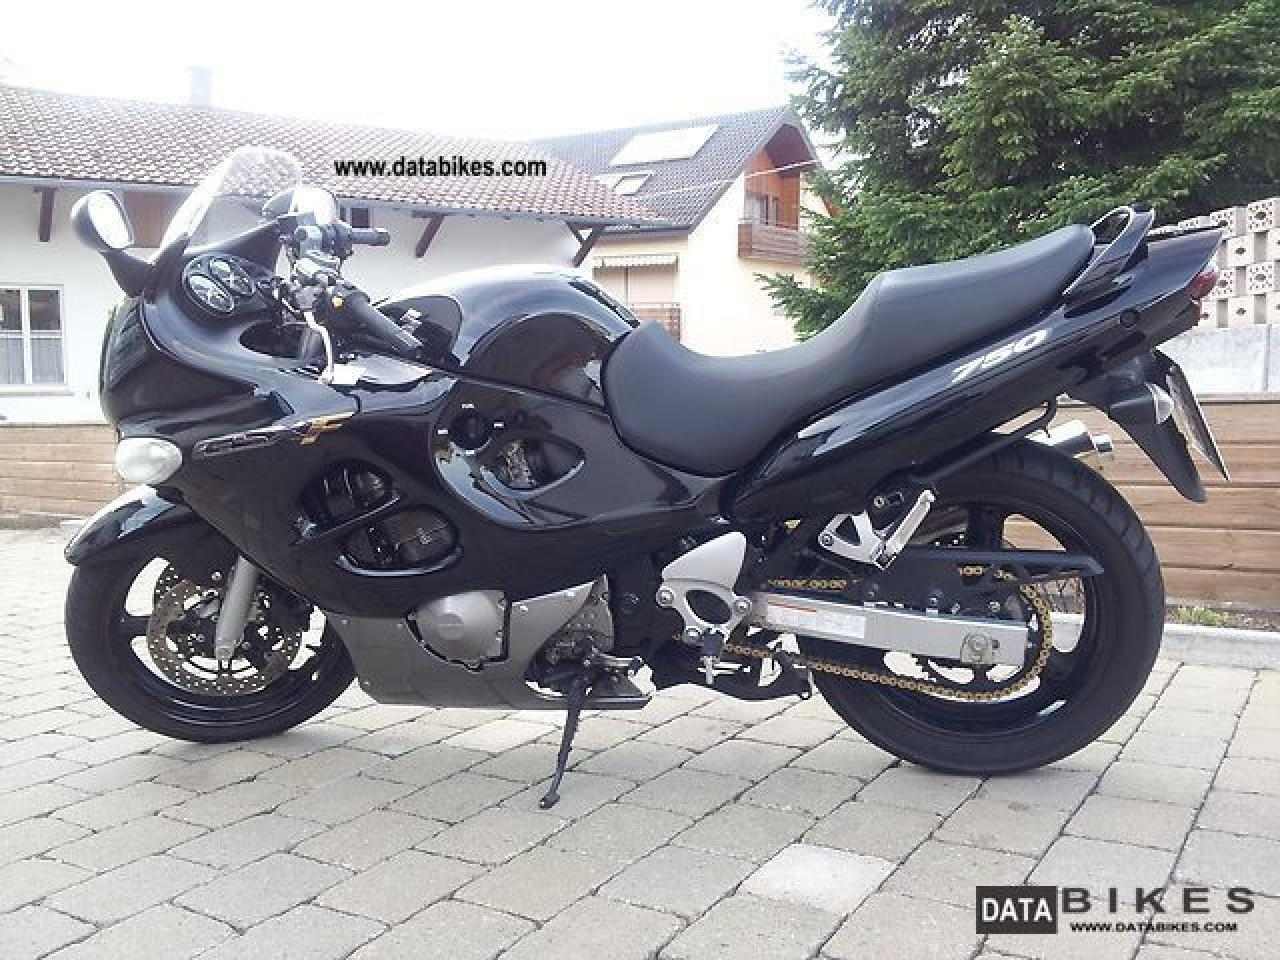 2006 suzuki gsx 750 f moto zombdrive com. Black Bedroom Furniture Sets. Home Design Ideas